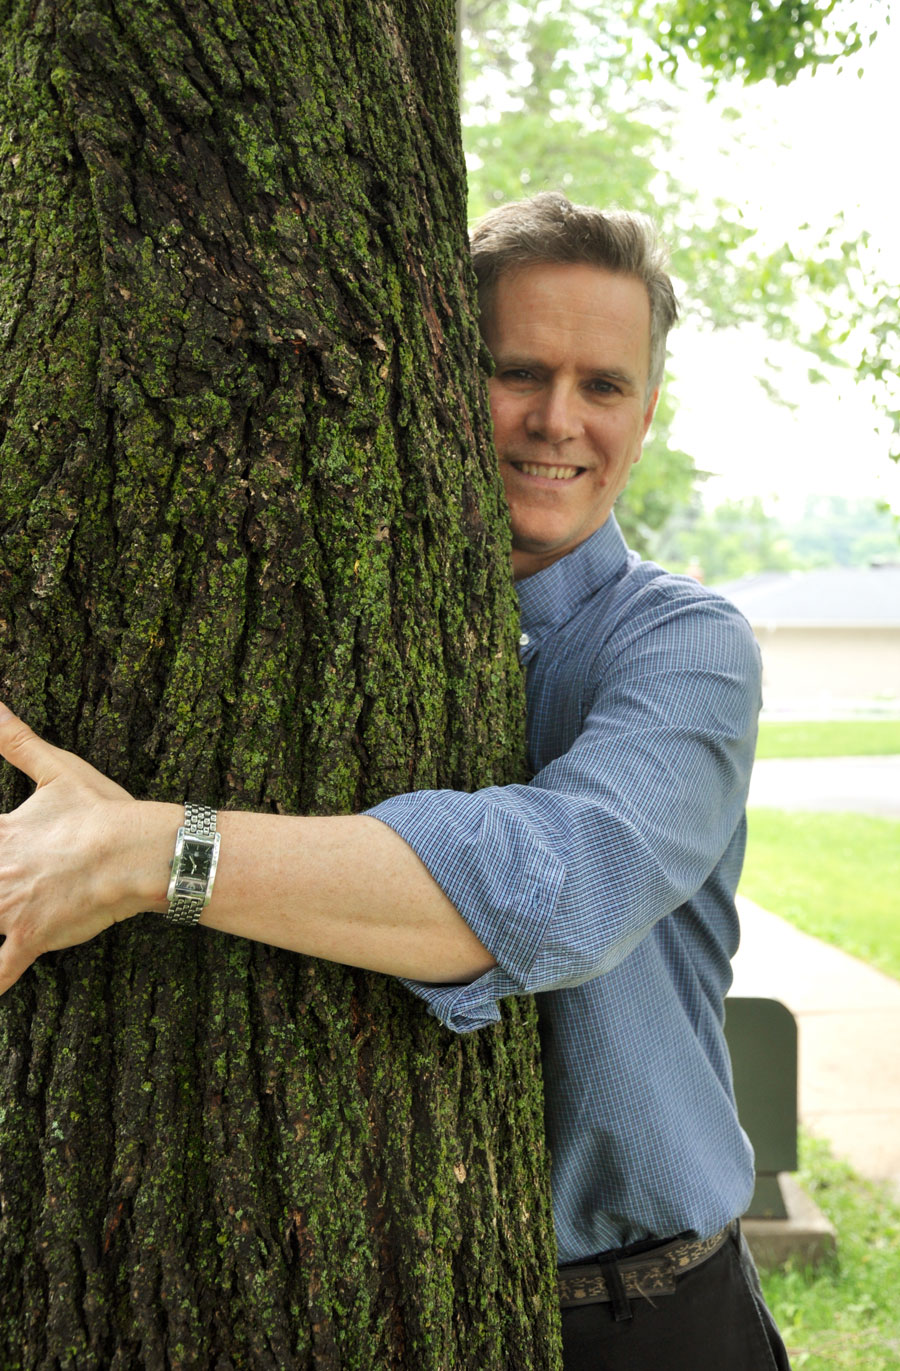 Man hugging a tree, wearing blue button up long-sleeved shirt